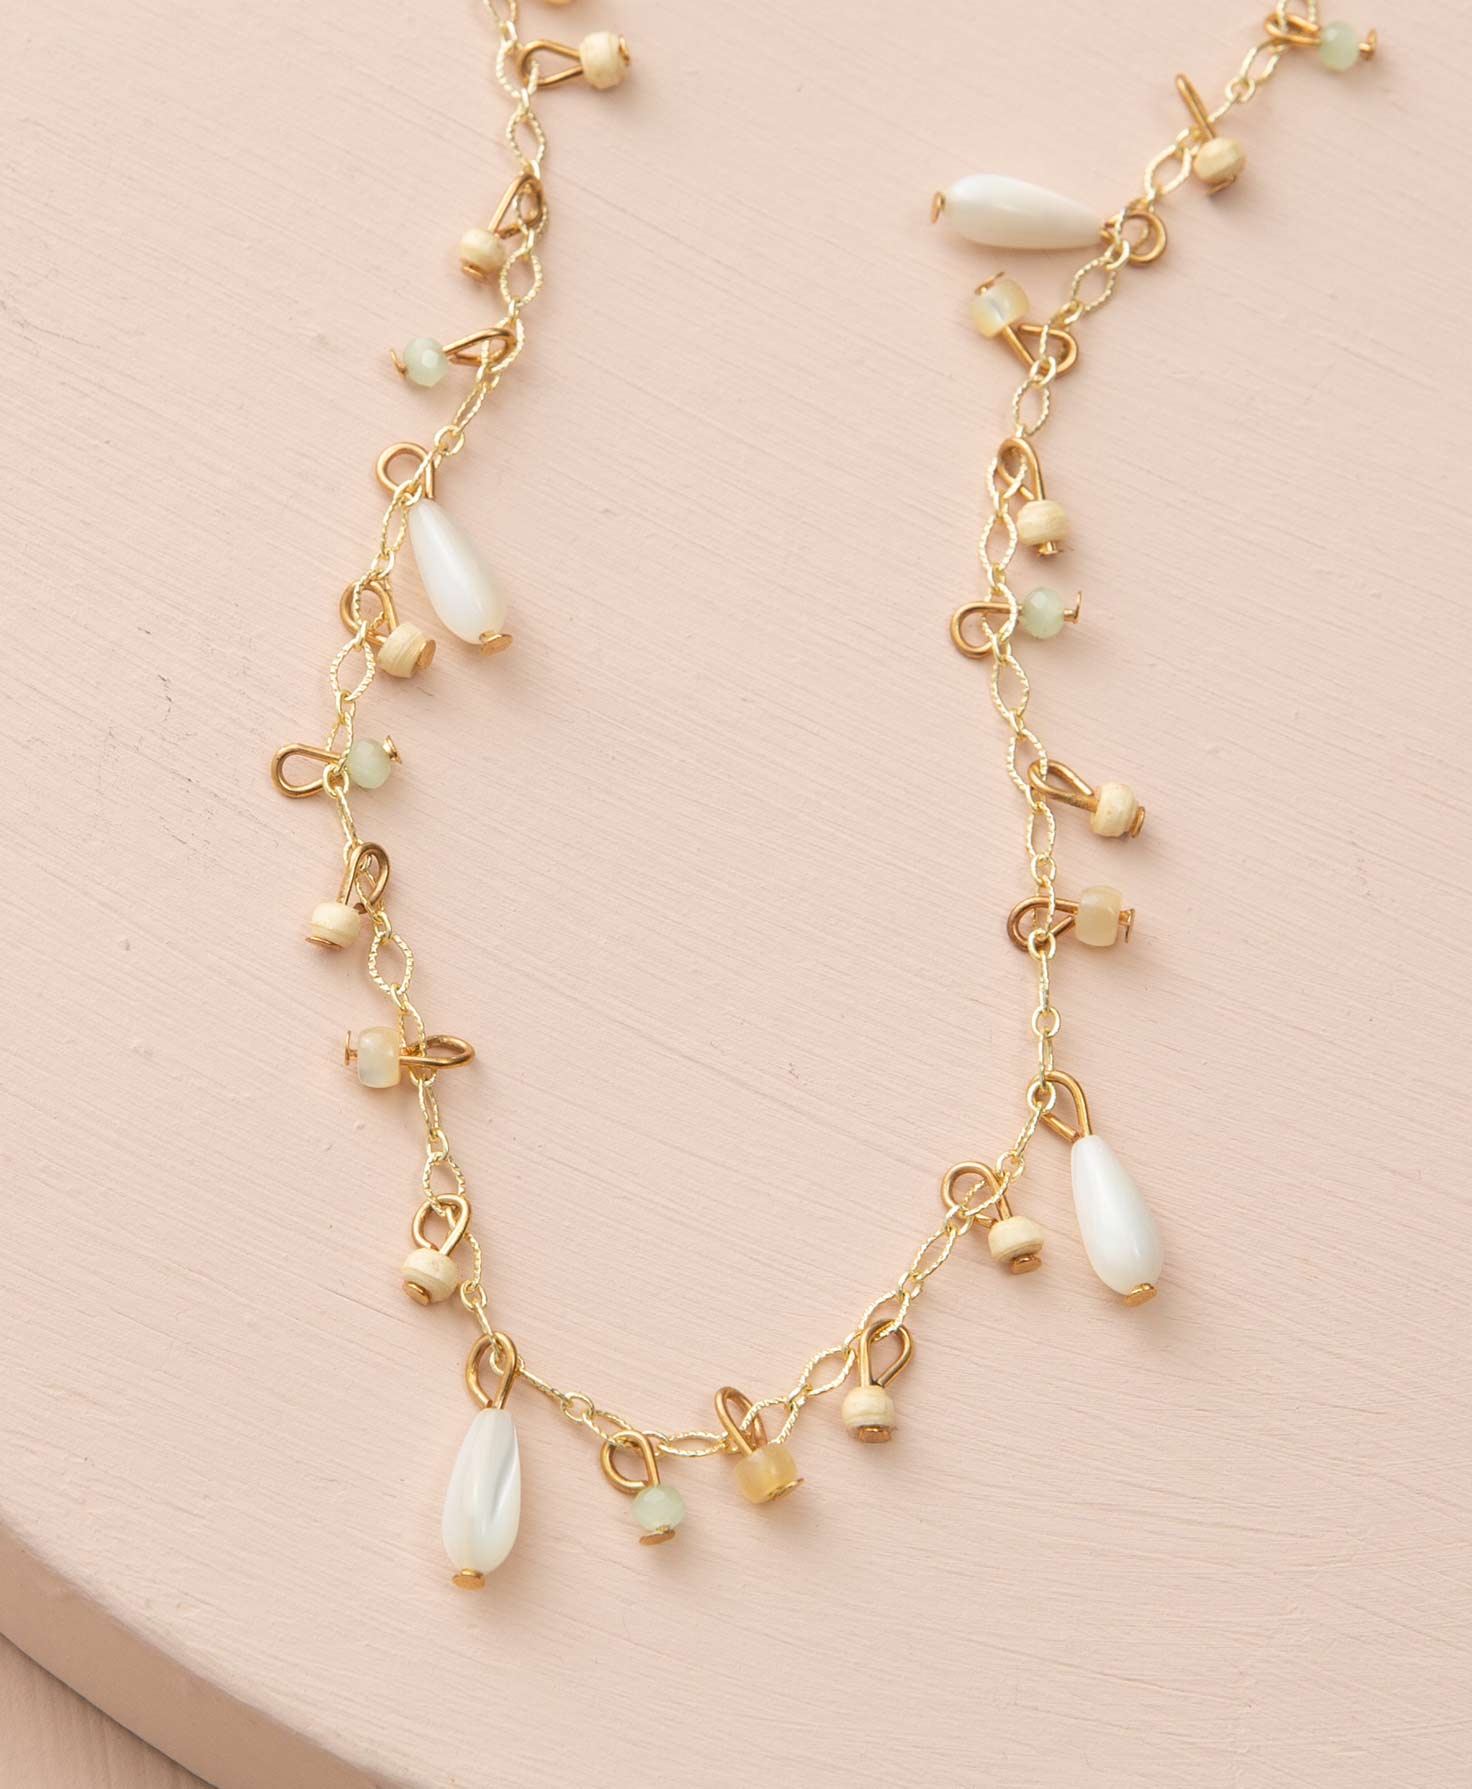 The Shipshape Necklace lays on a blush-colored platform. It has a gold chain with medium-sized links. Every inch or so, a brass wire connects a bead to the chain. Most of the beads are small, round paper or glass beads. They are either cream or mint colored. Every few inches there is a larger, teardrop-shaped pearl bead connected to the chain.